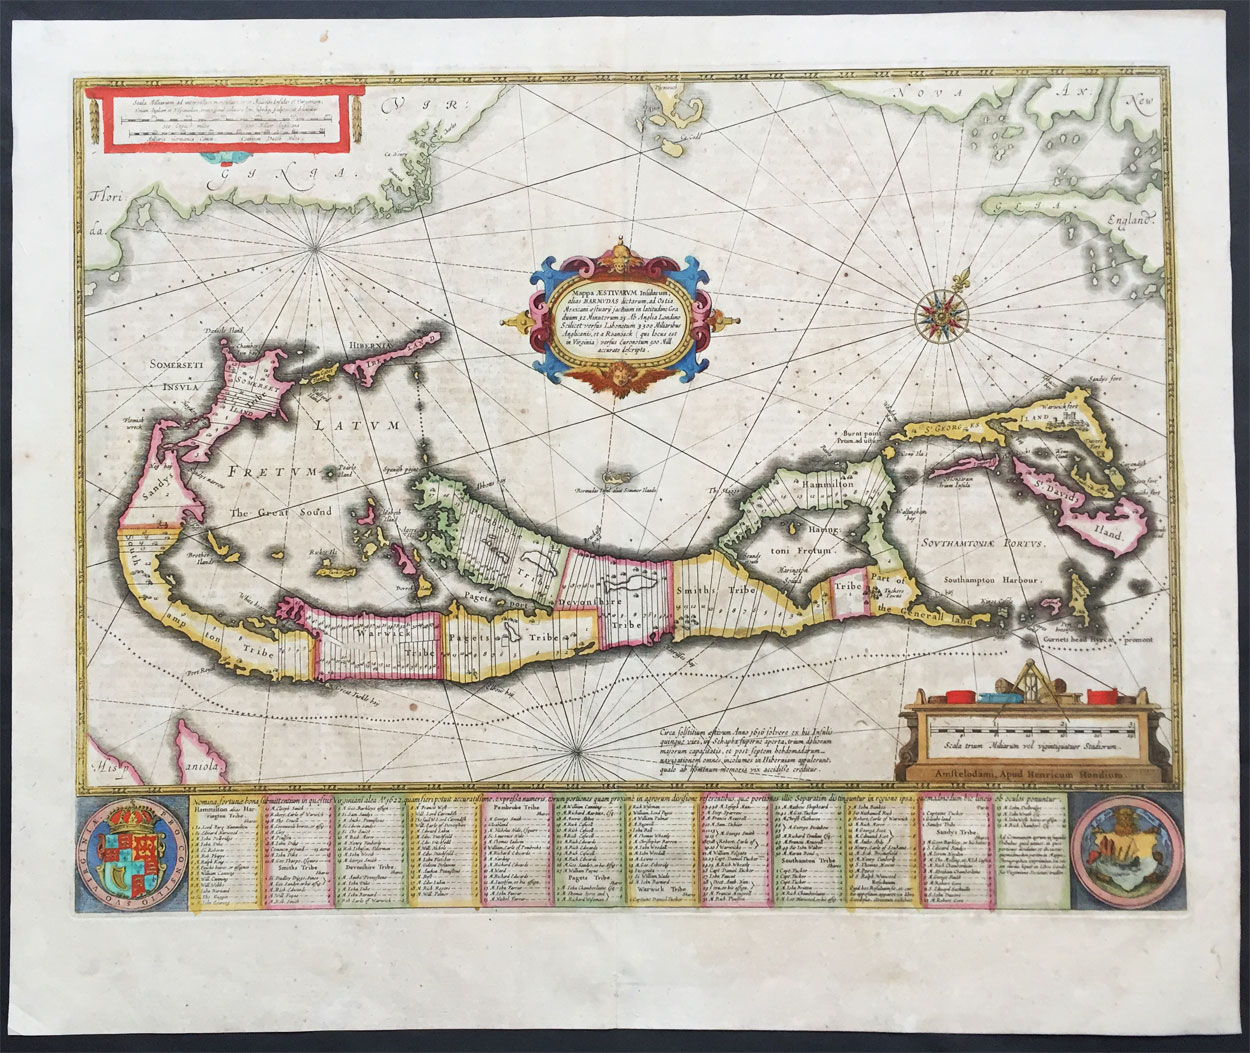 Buy Antique Maps Historical Atlases World Maps Cartography And - Where to buy antique maps